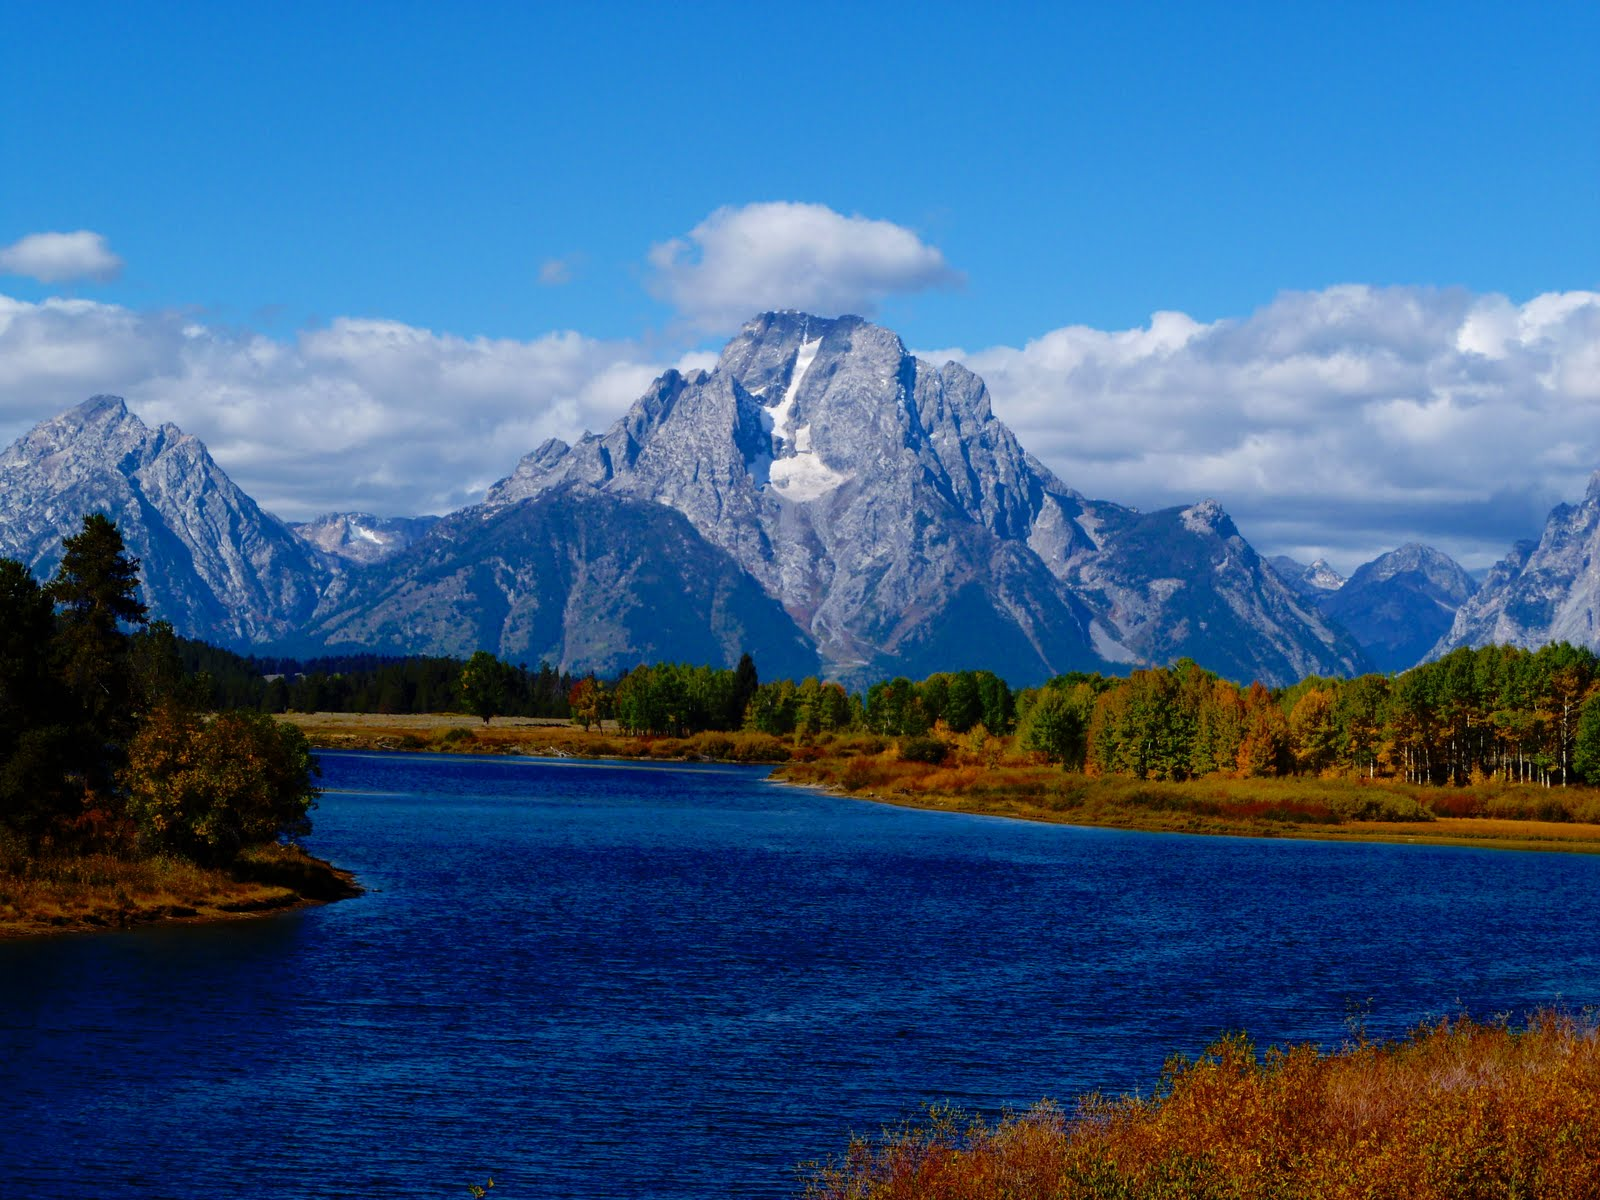 East Orange Focus >> The Journey is a Wild One: The Grand Tetons - Entering In ...